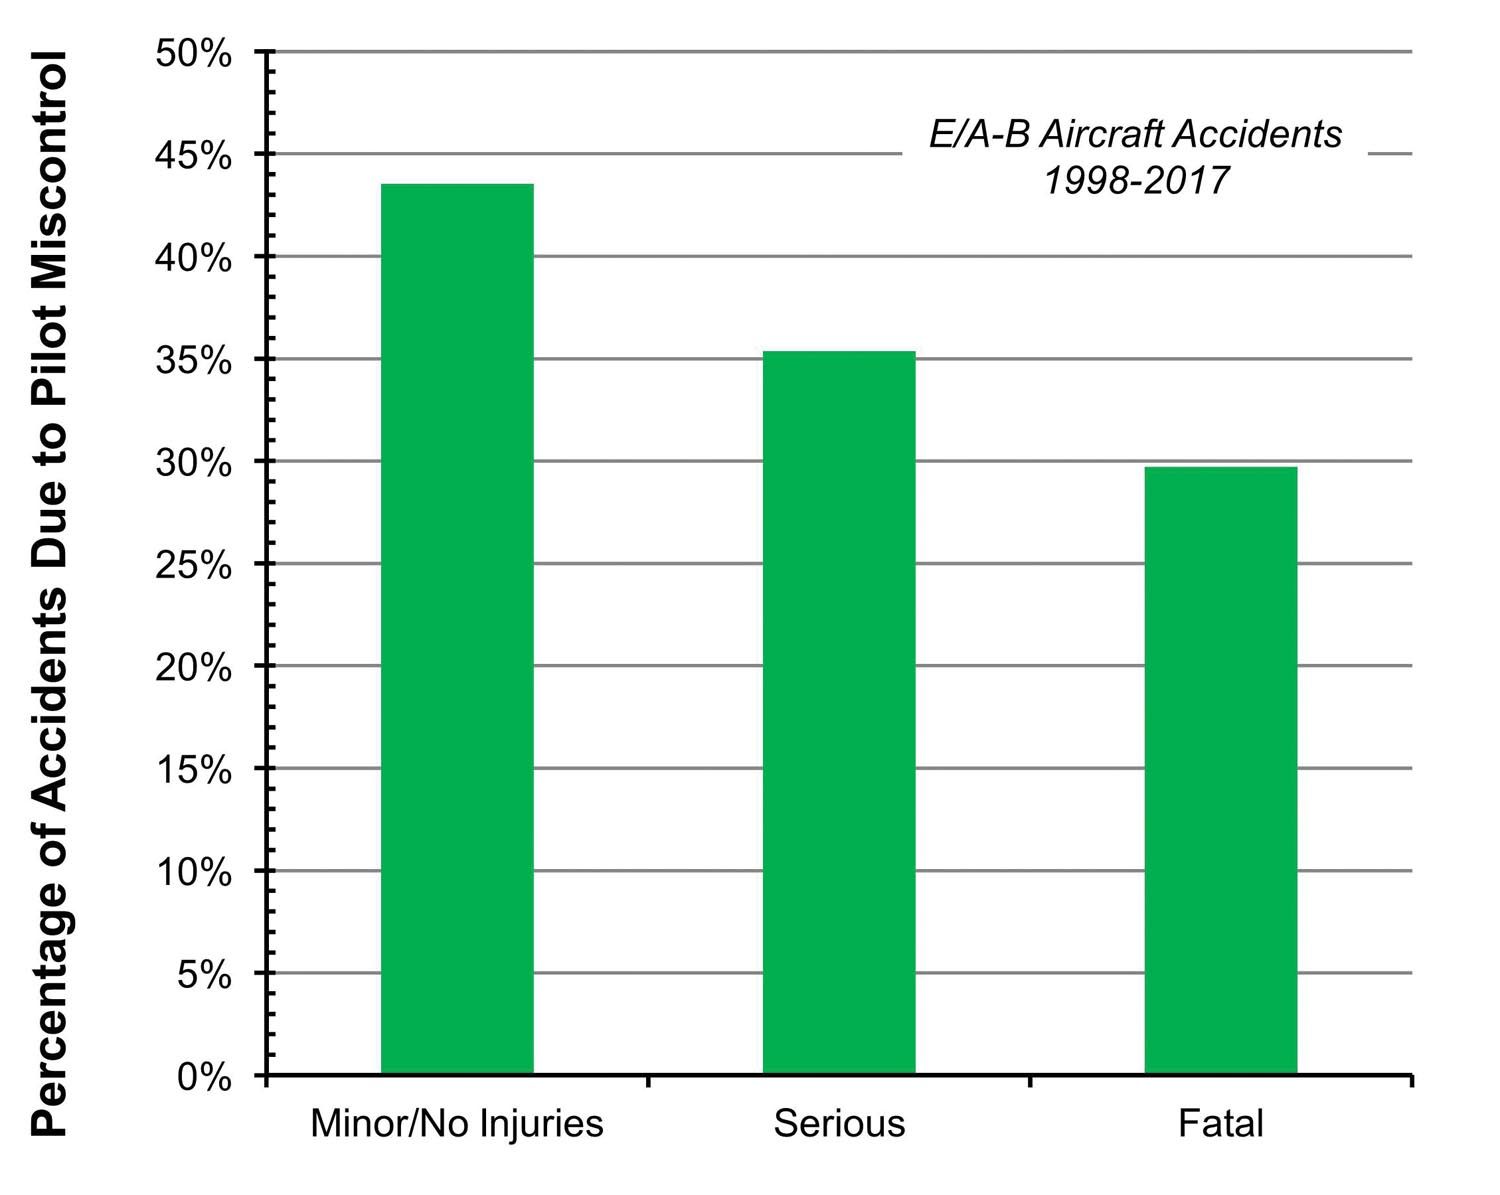 Figure 1: Pilot miscontrol rate vs. severity of injuries.